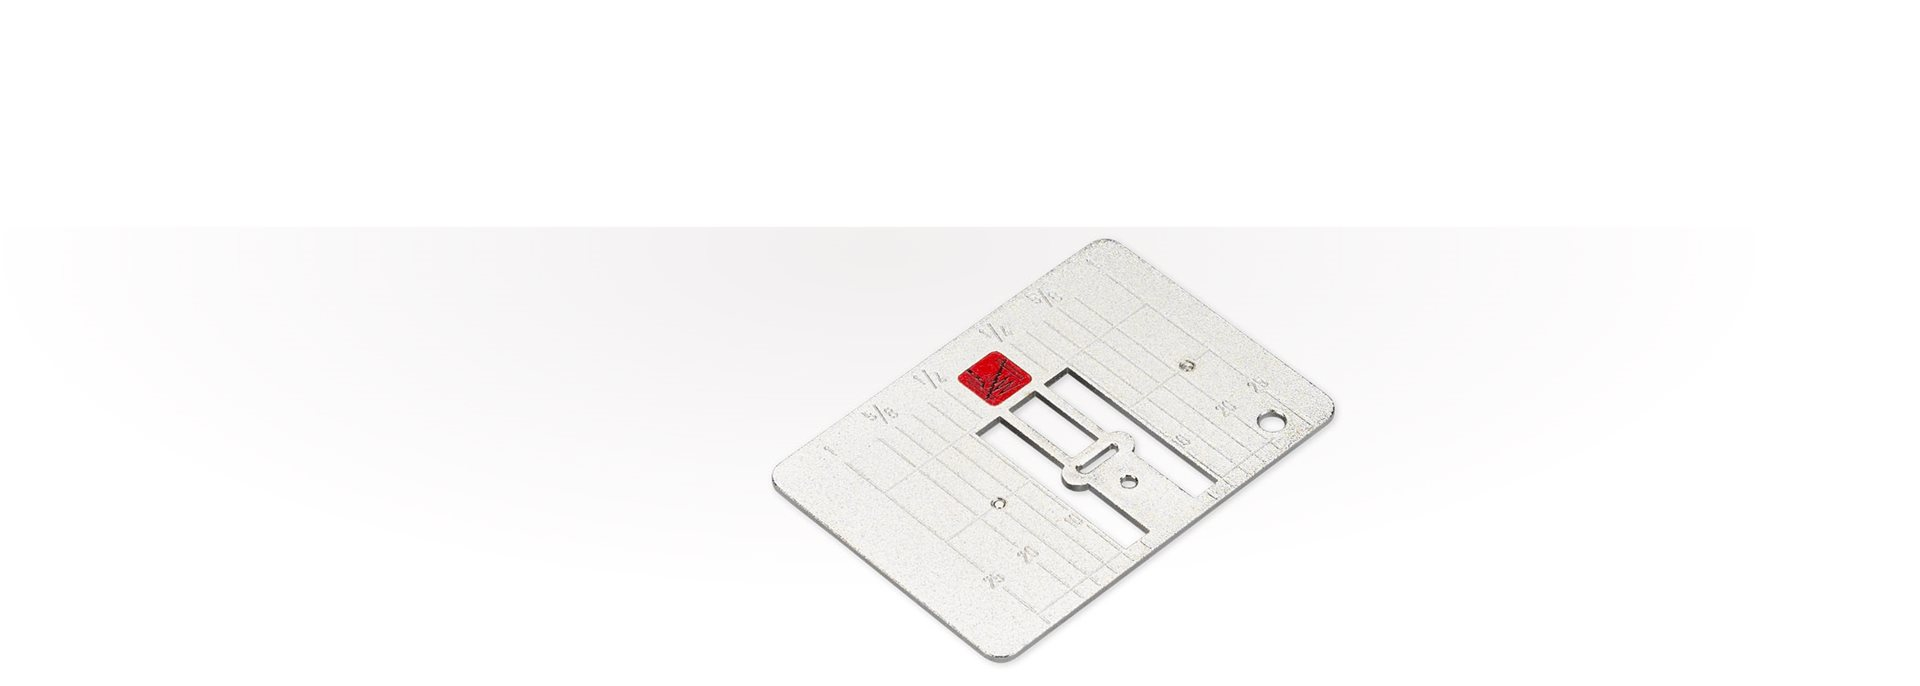 Picture: Stitch plate with narrow needle opening (5.5mm